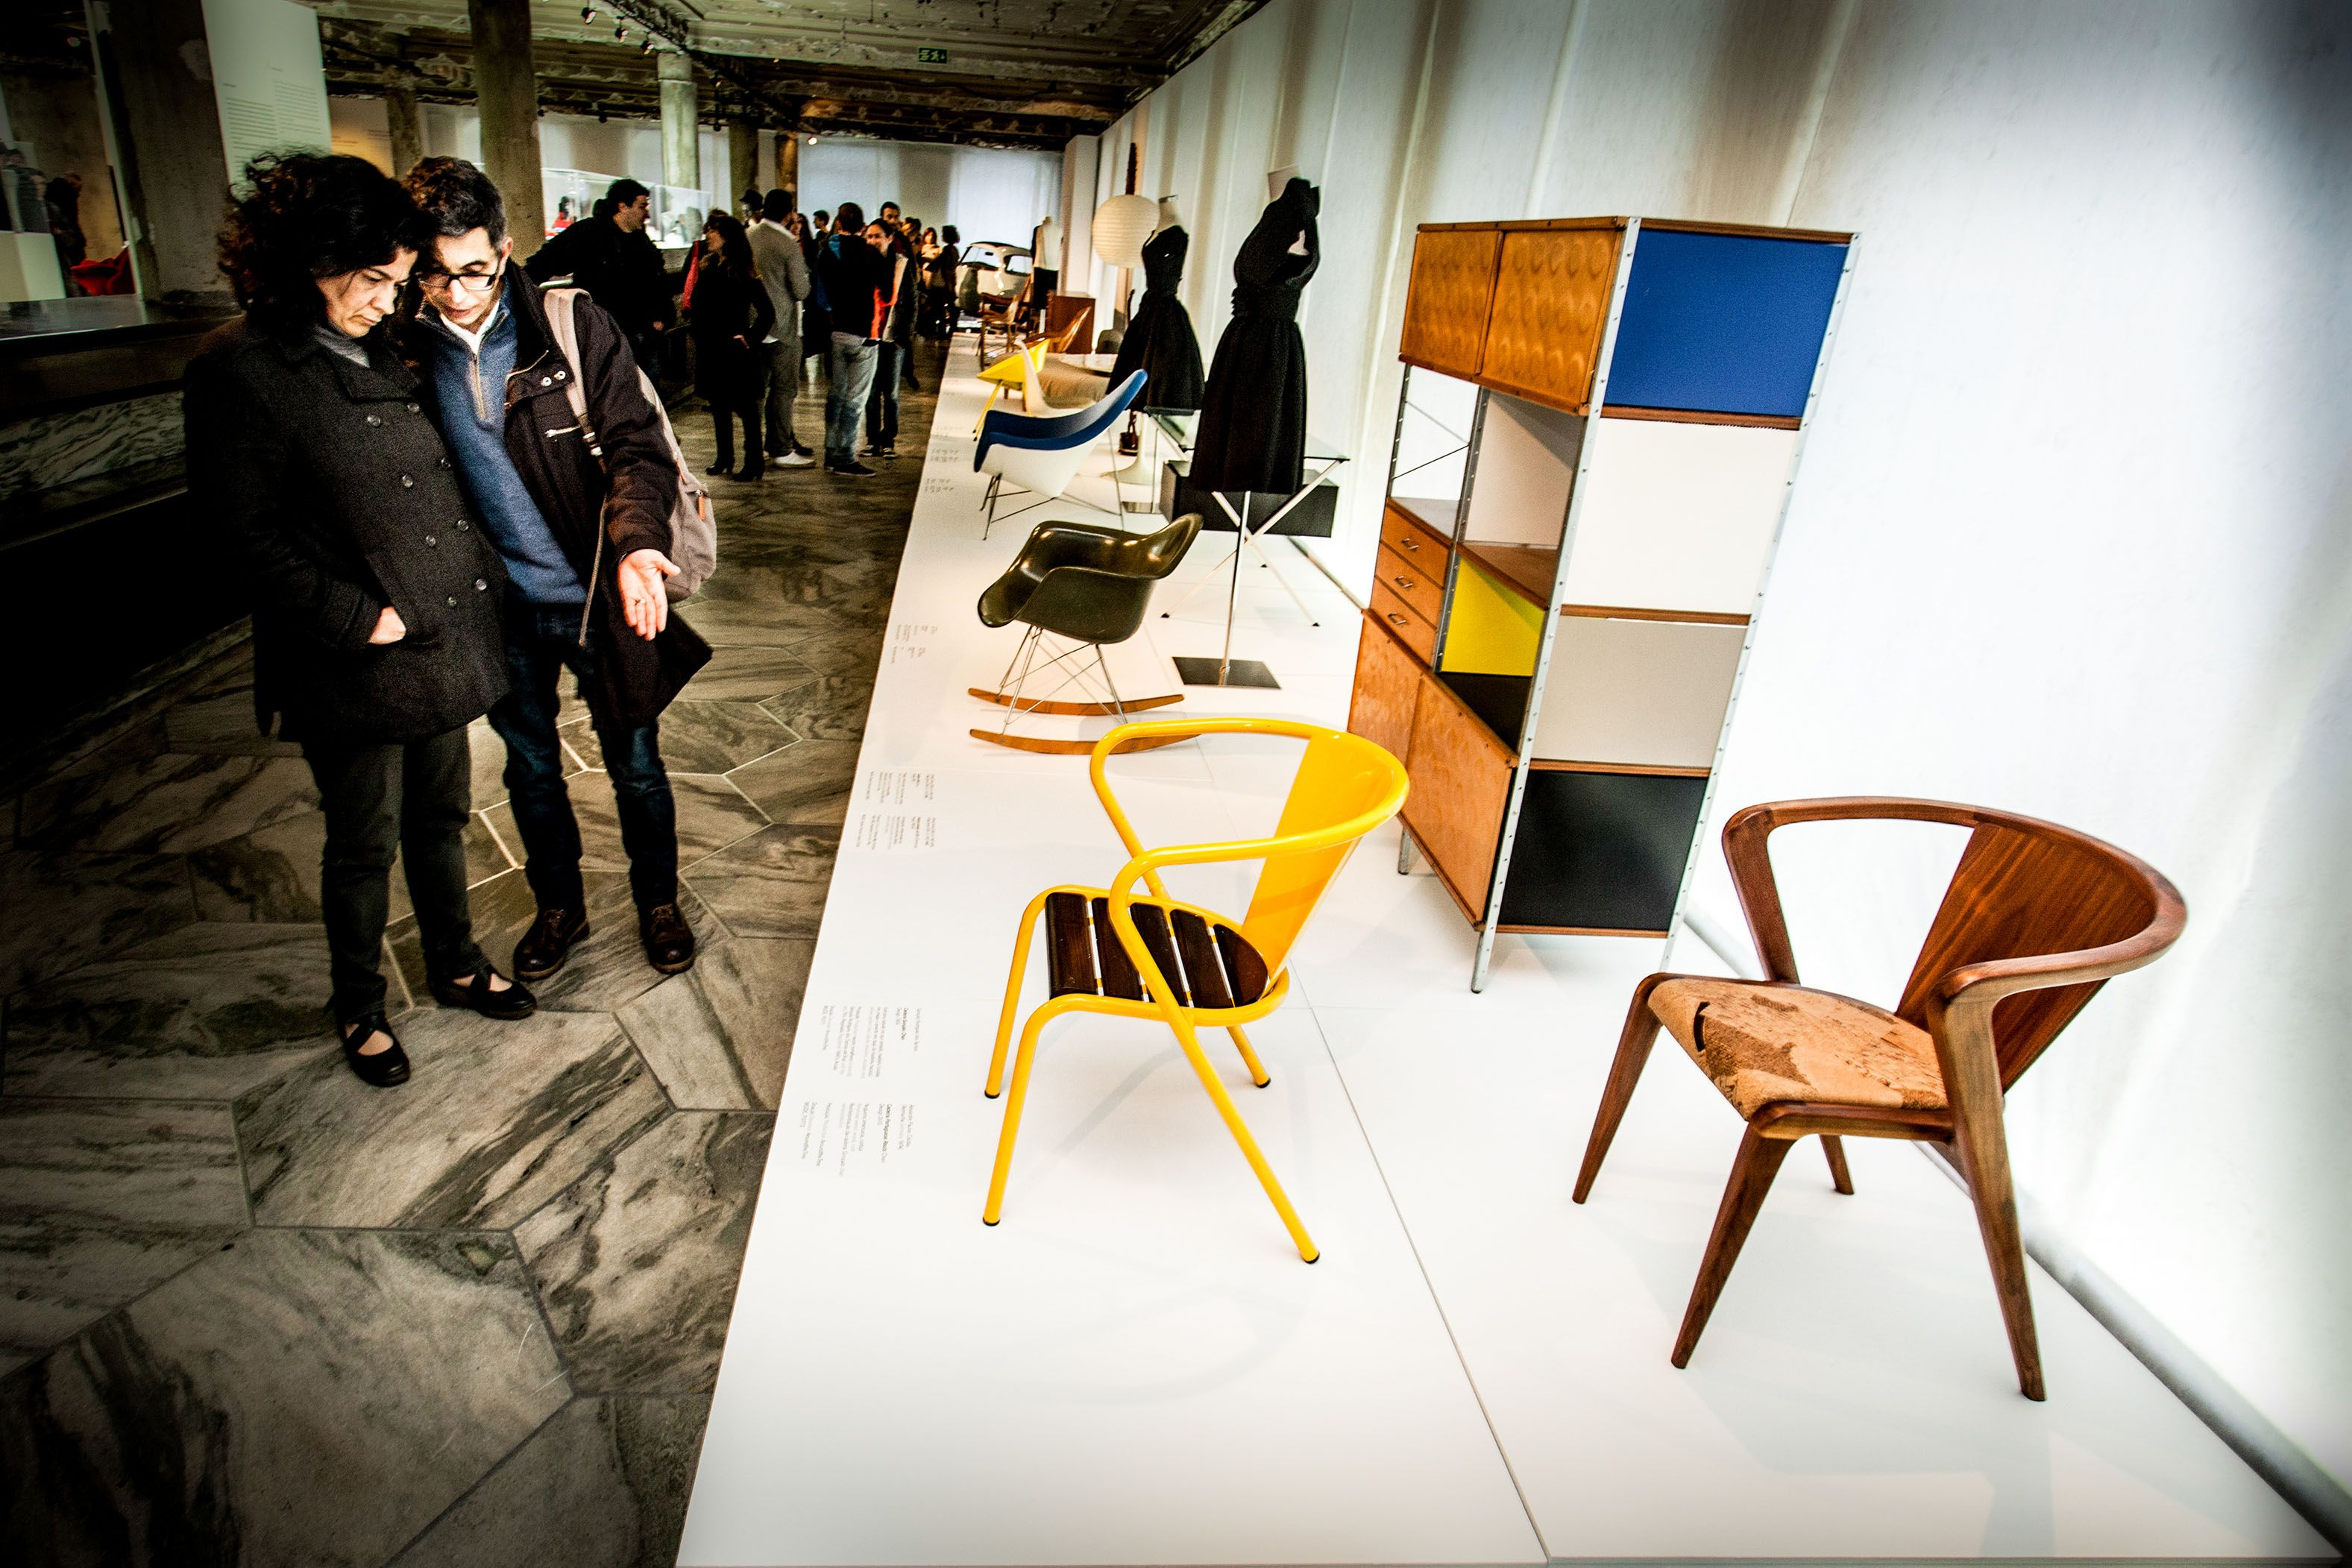 AROUNDtheTREE present at MUDE ( Portuguese National Museum of Design ) with Portguese ROOTS Chair #design #furniture #aroundthetreedesign #interiors #interiordesign